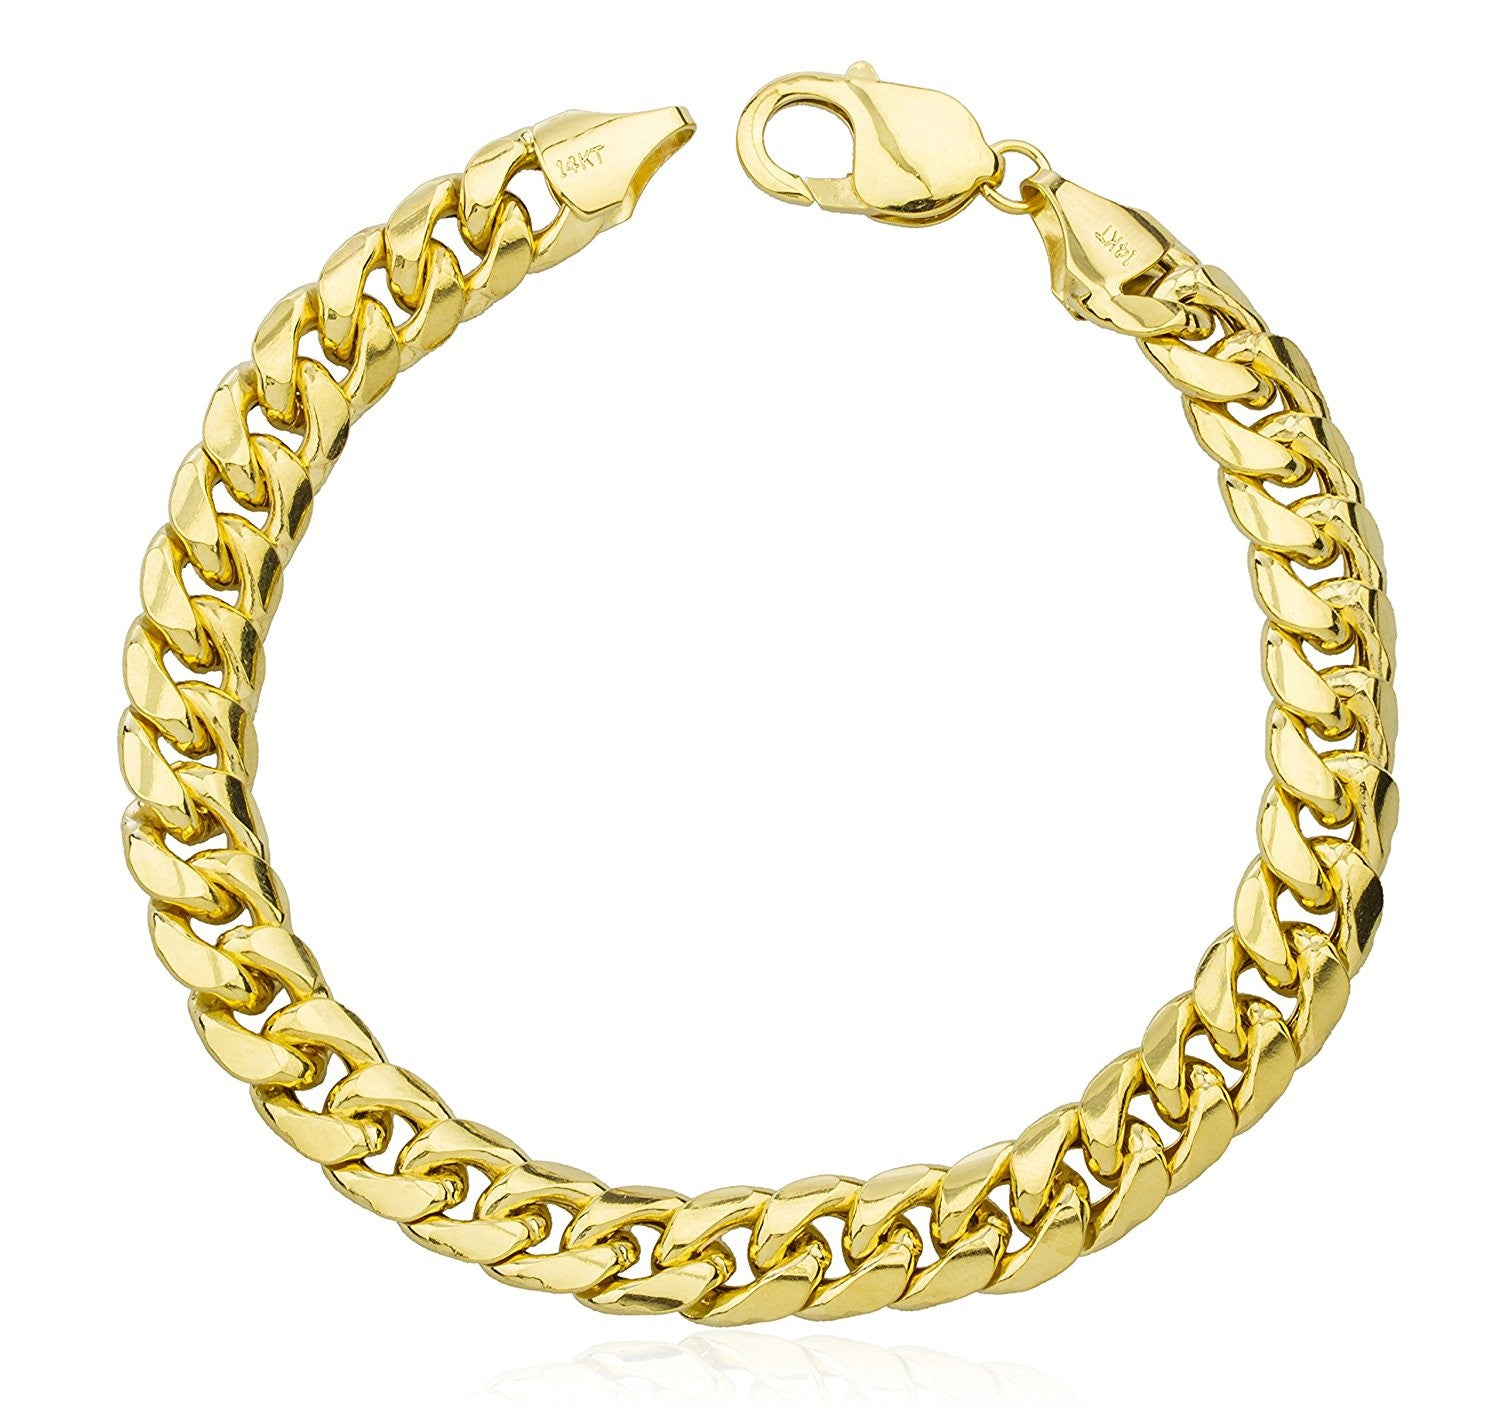 link yellow gold bracelet franco chain watches free overstock product jewelry today shipping hollow